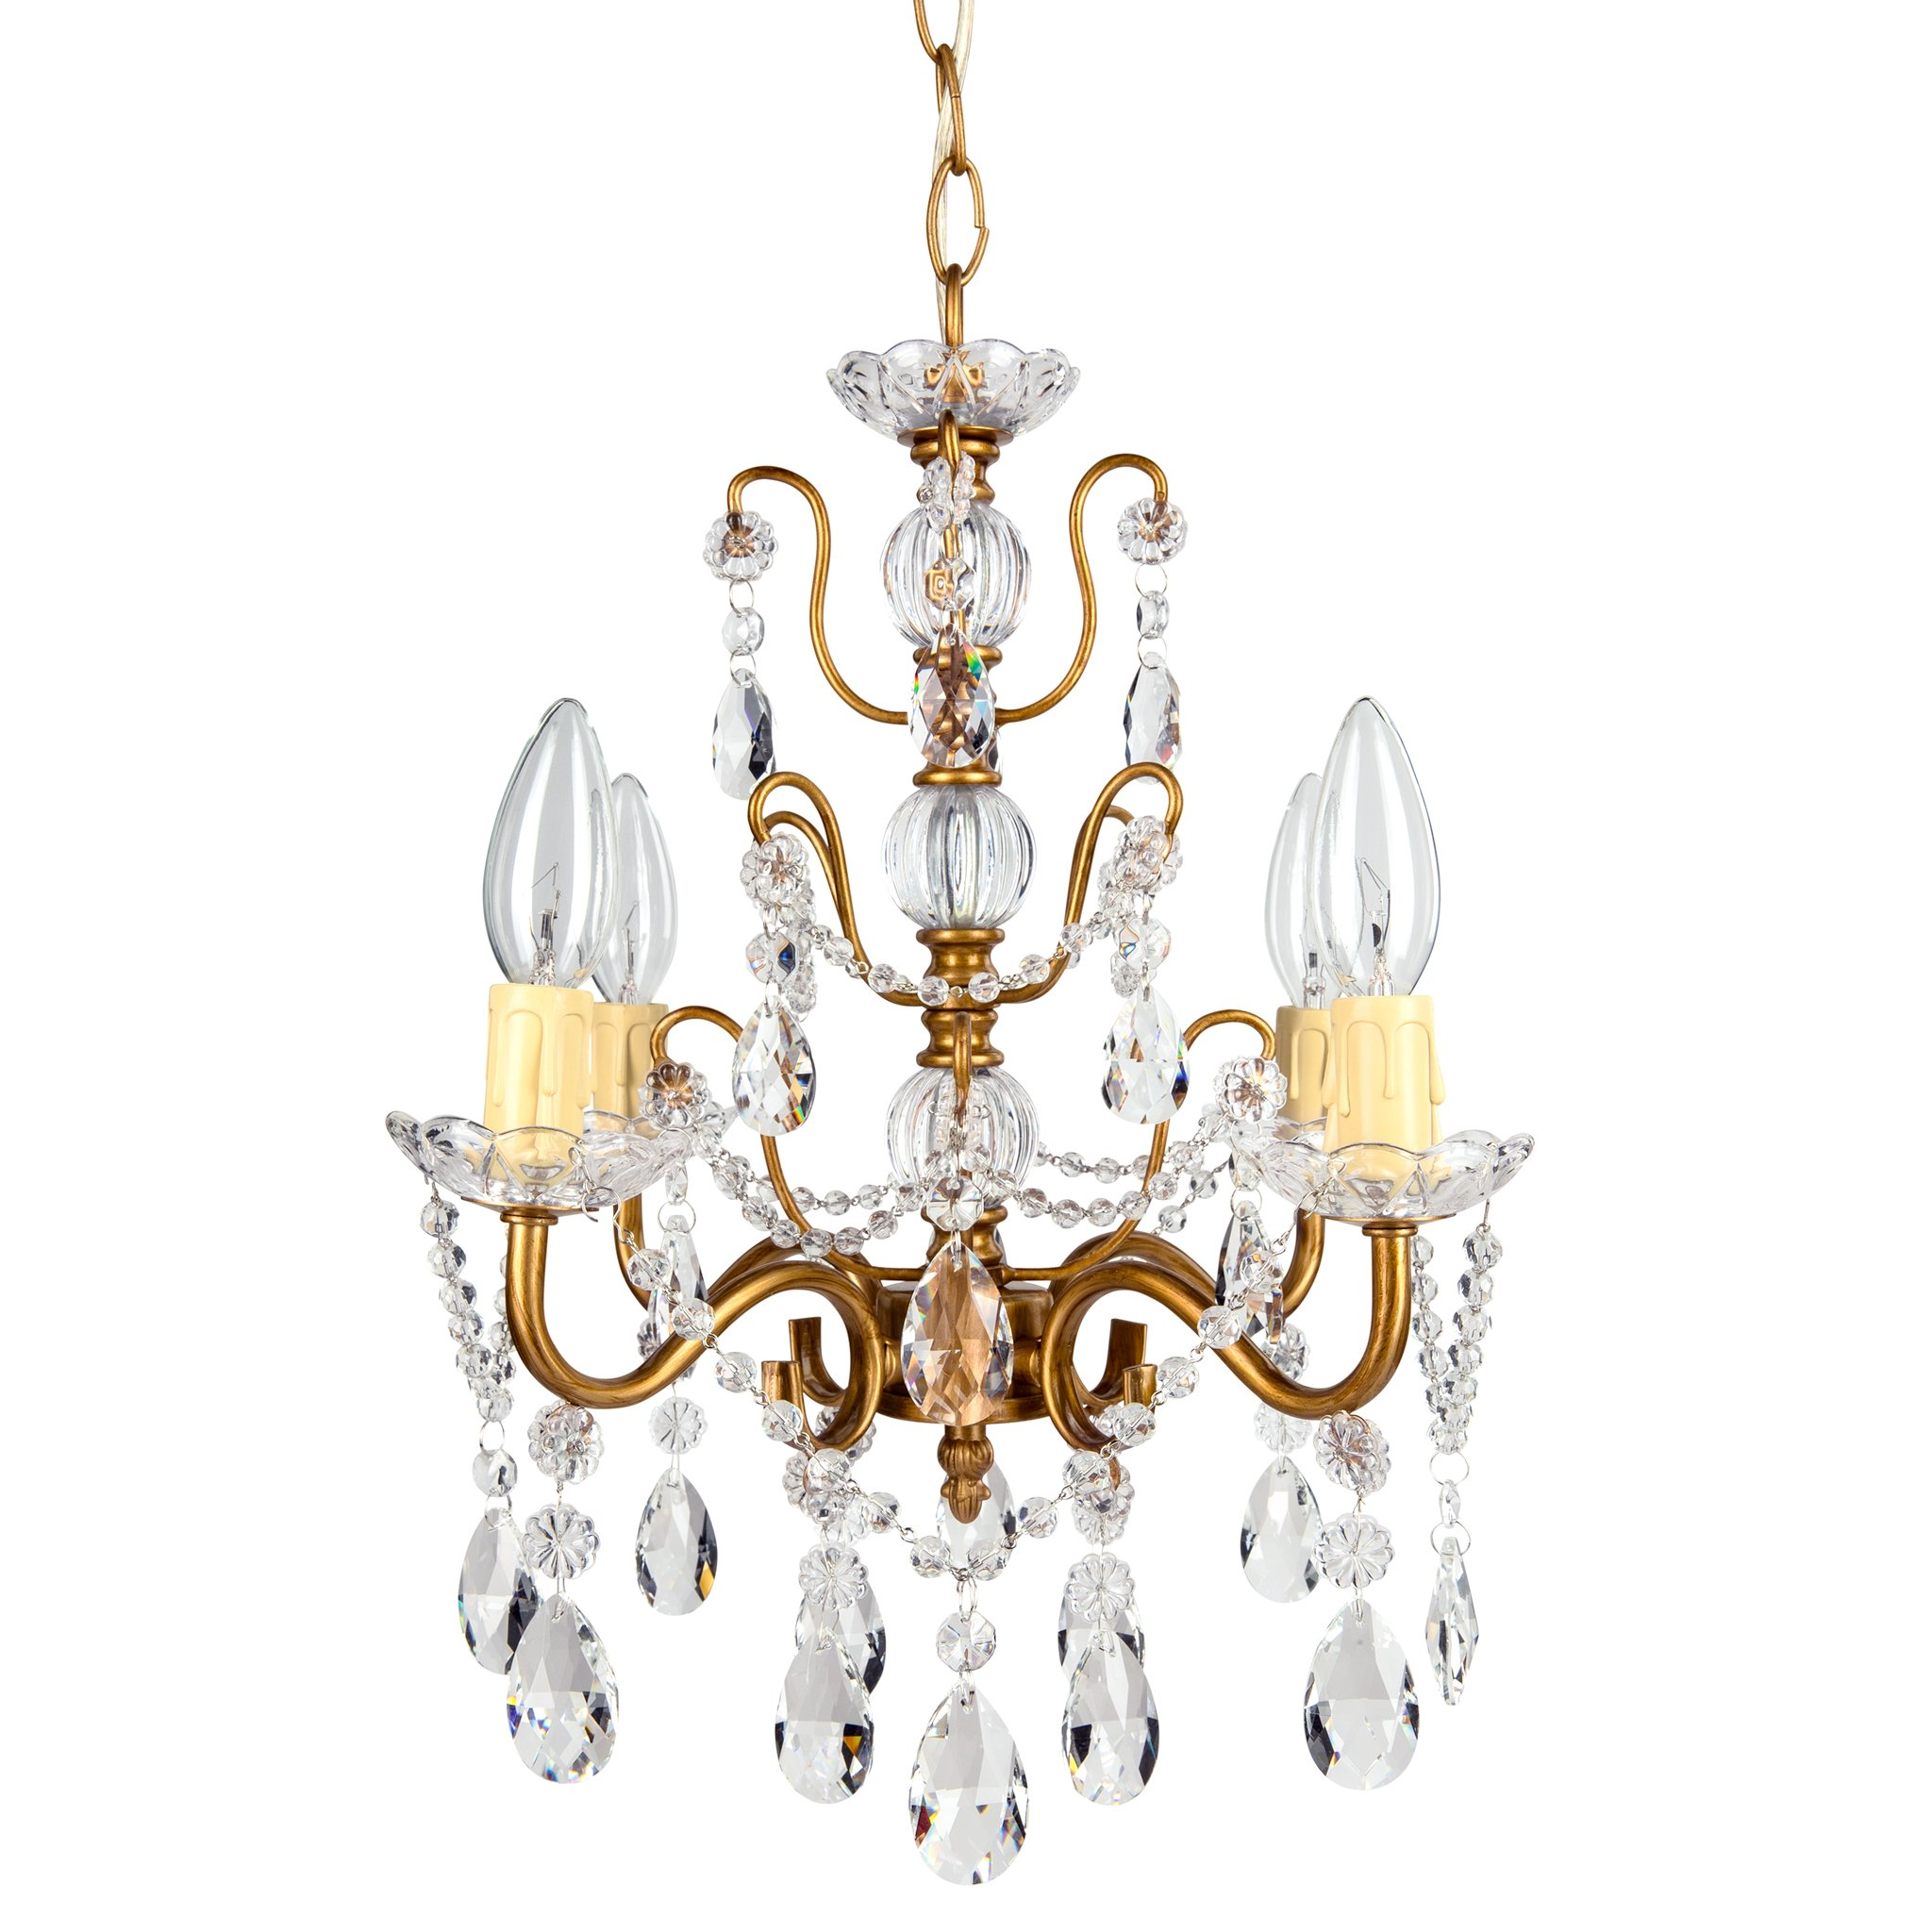 Amalfi Decor 4 Light Shabby Chic Crystal Plug-In Chandelier (Gold) | H | Wrought Iron Frame with Glass Crystals